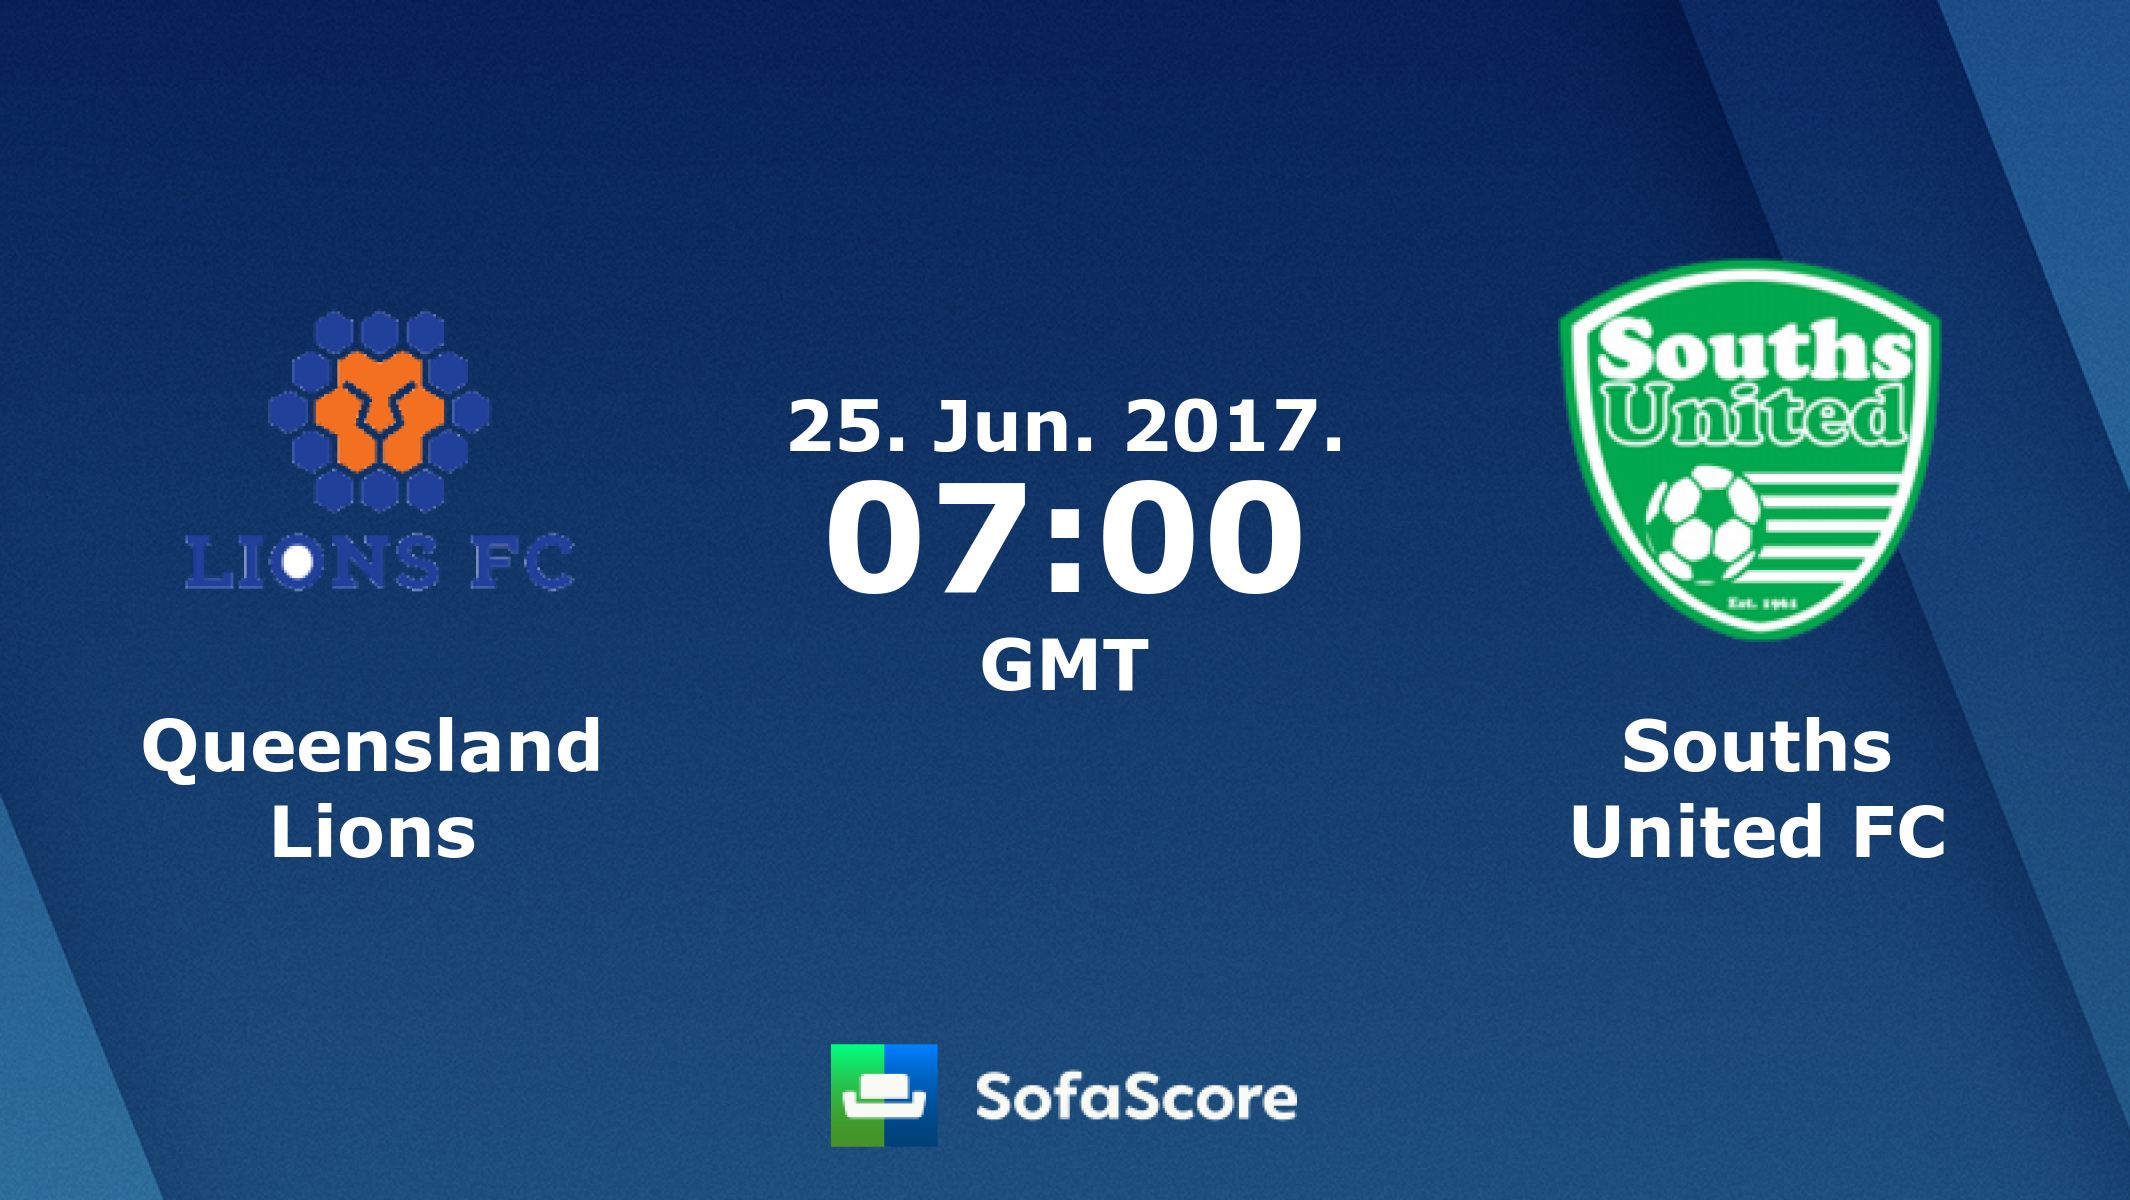 Queensland Lions Souths United FC live score, video stream